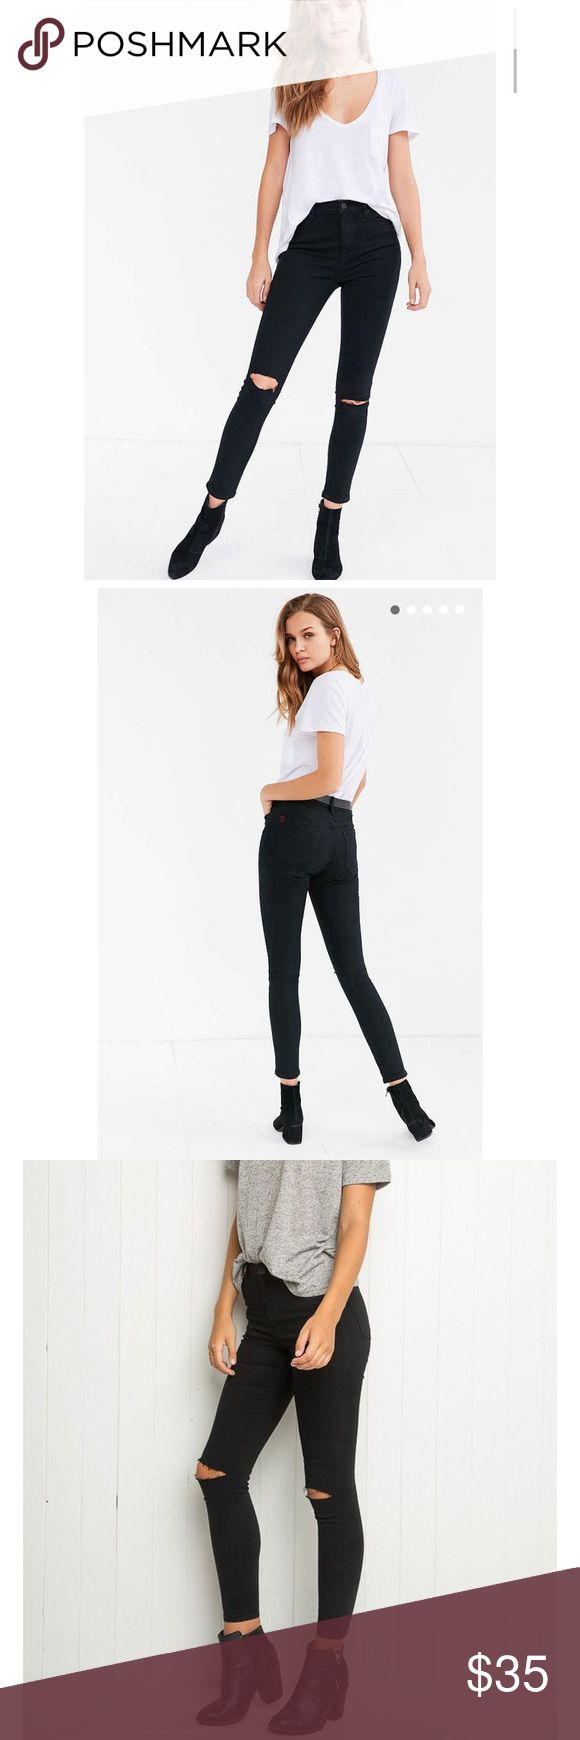 BDG Urban Outfitters Twig High Rise Black w/ Slit Never worn, new with tags. Inseam is 29 inches. Rise is 11 inches. Still for sale at Urban... get it here cheaper! True to size Urban Outfitters Jeans Skinny